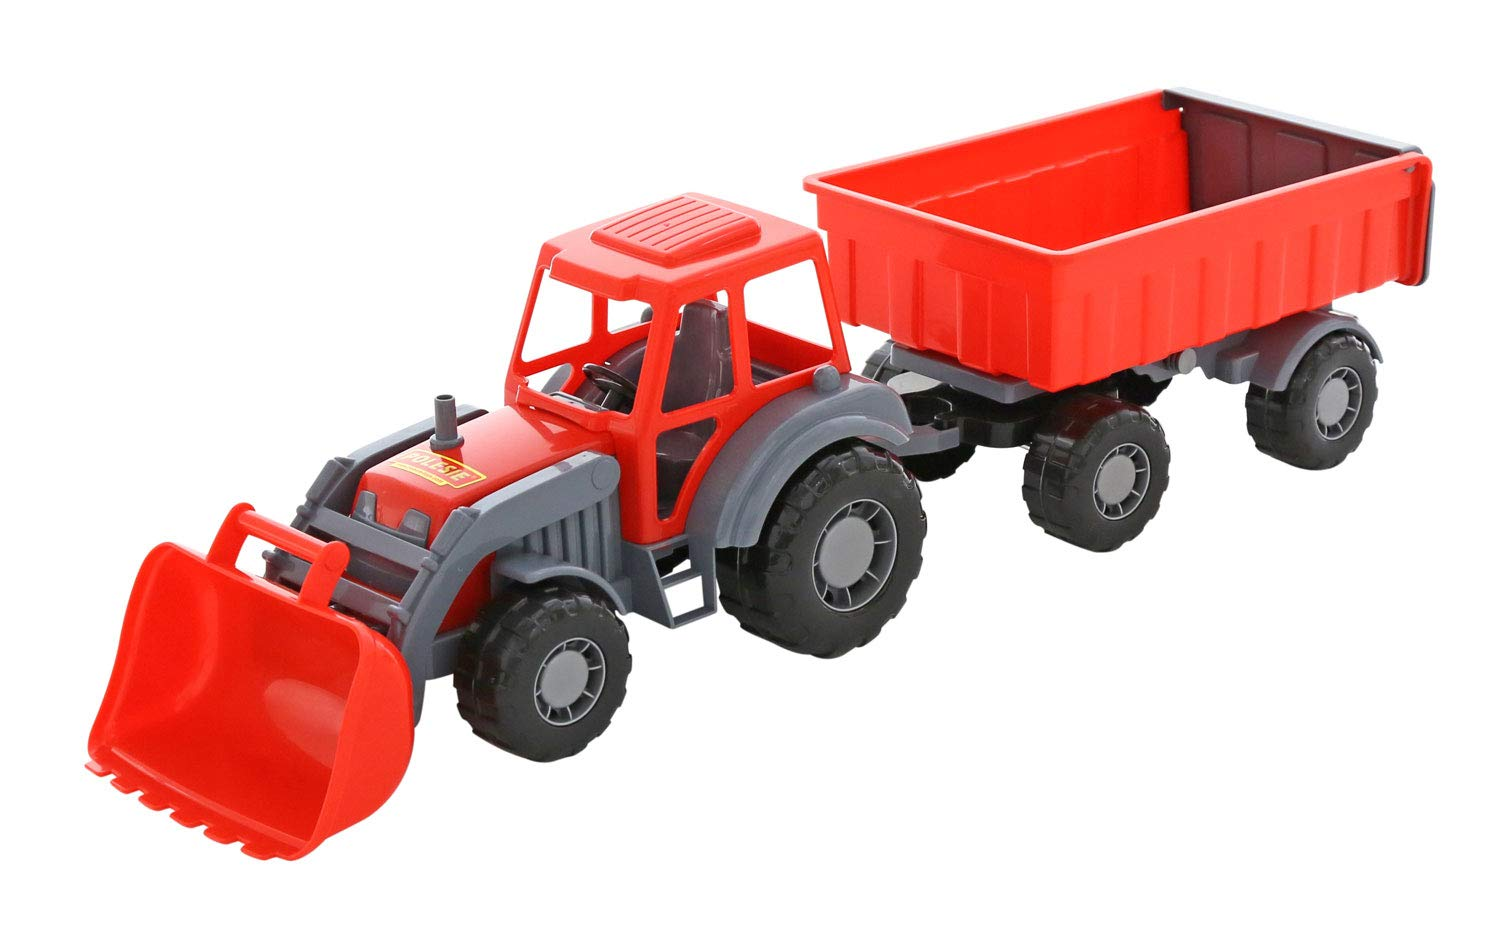 Wader Altay Tractor and Trailer with Frontloader (Colors may vary) PP POLESIE JV LTD. Polesie_35349